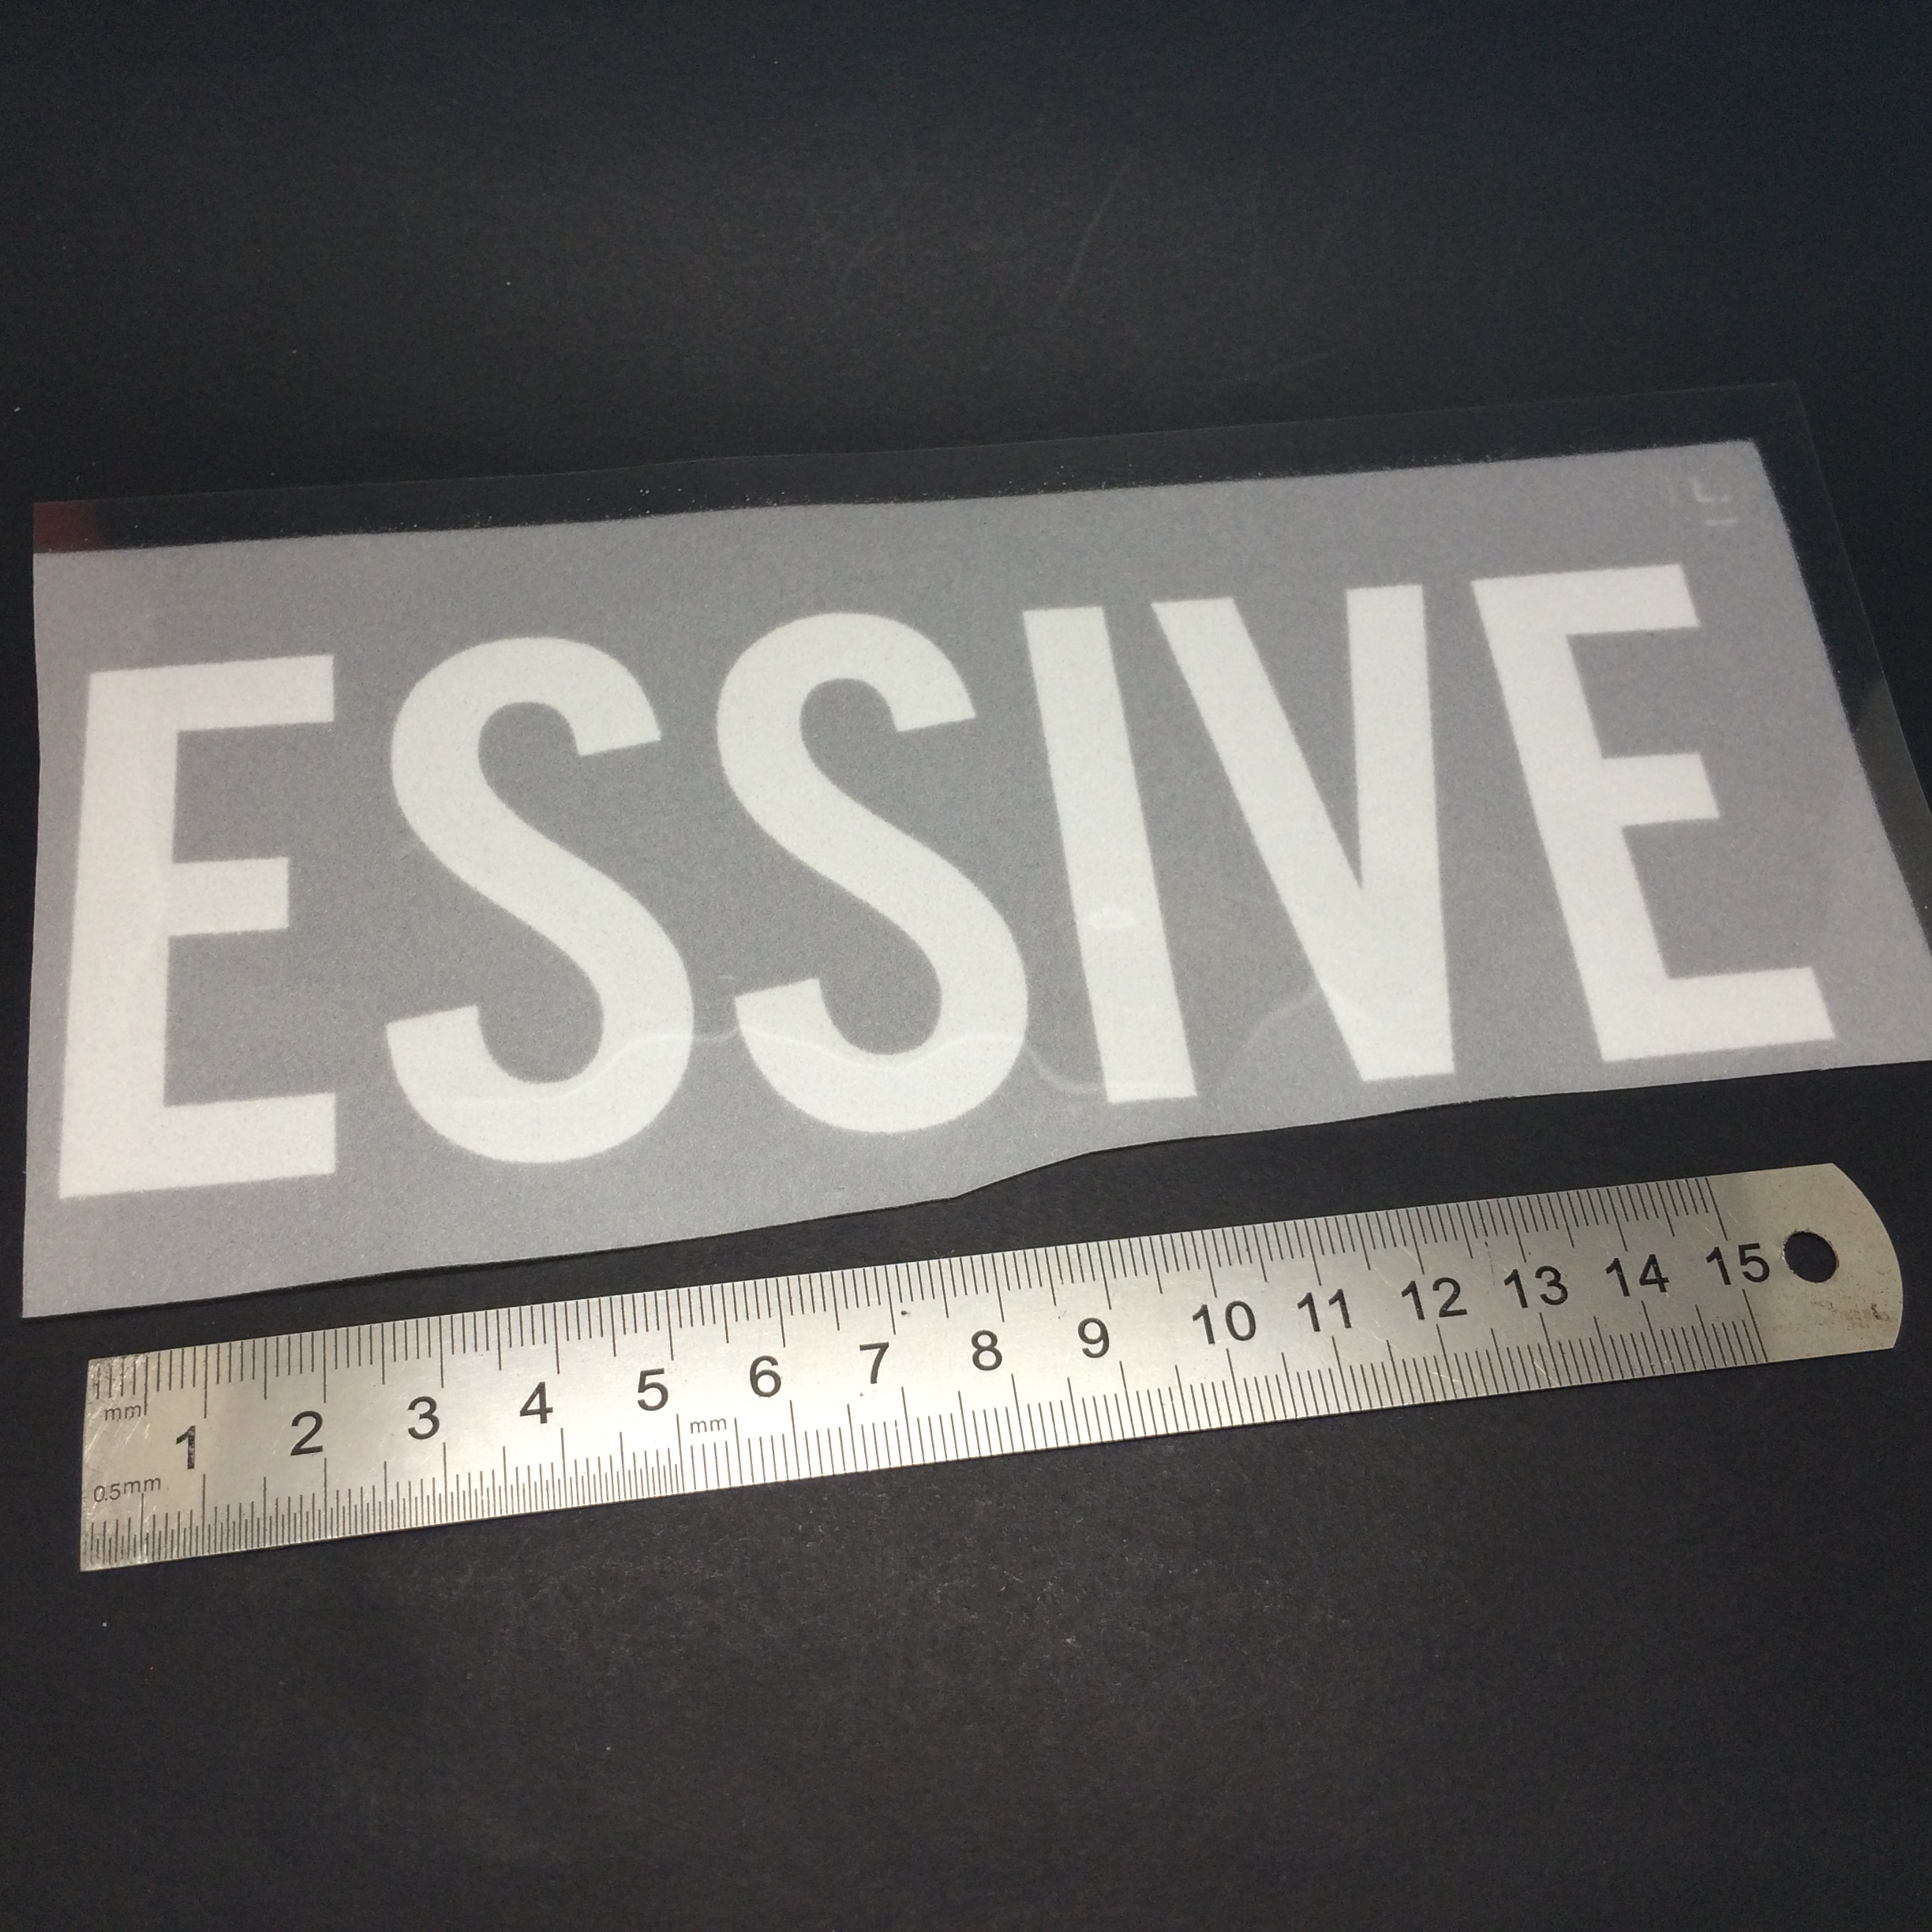 T-shirt thick silicone heat transfer printing sticker